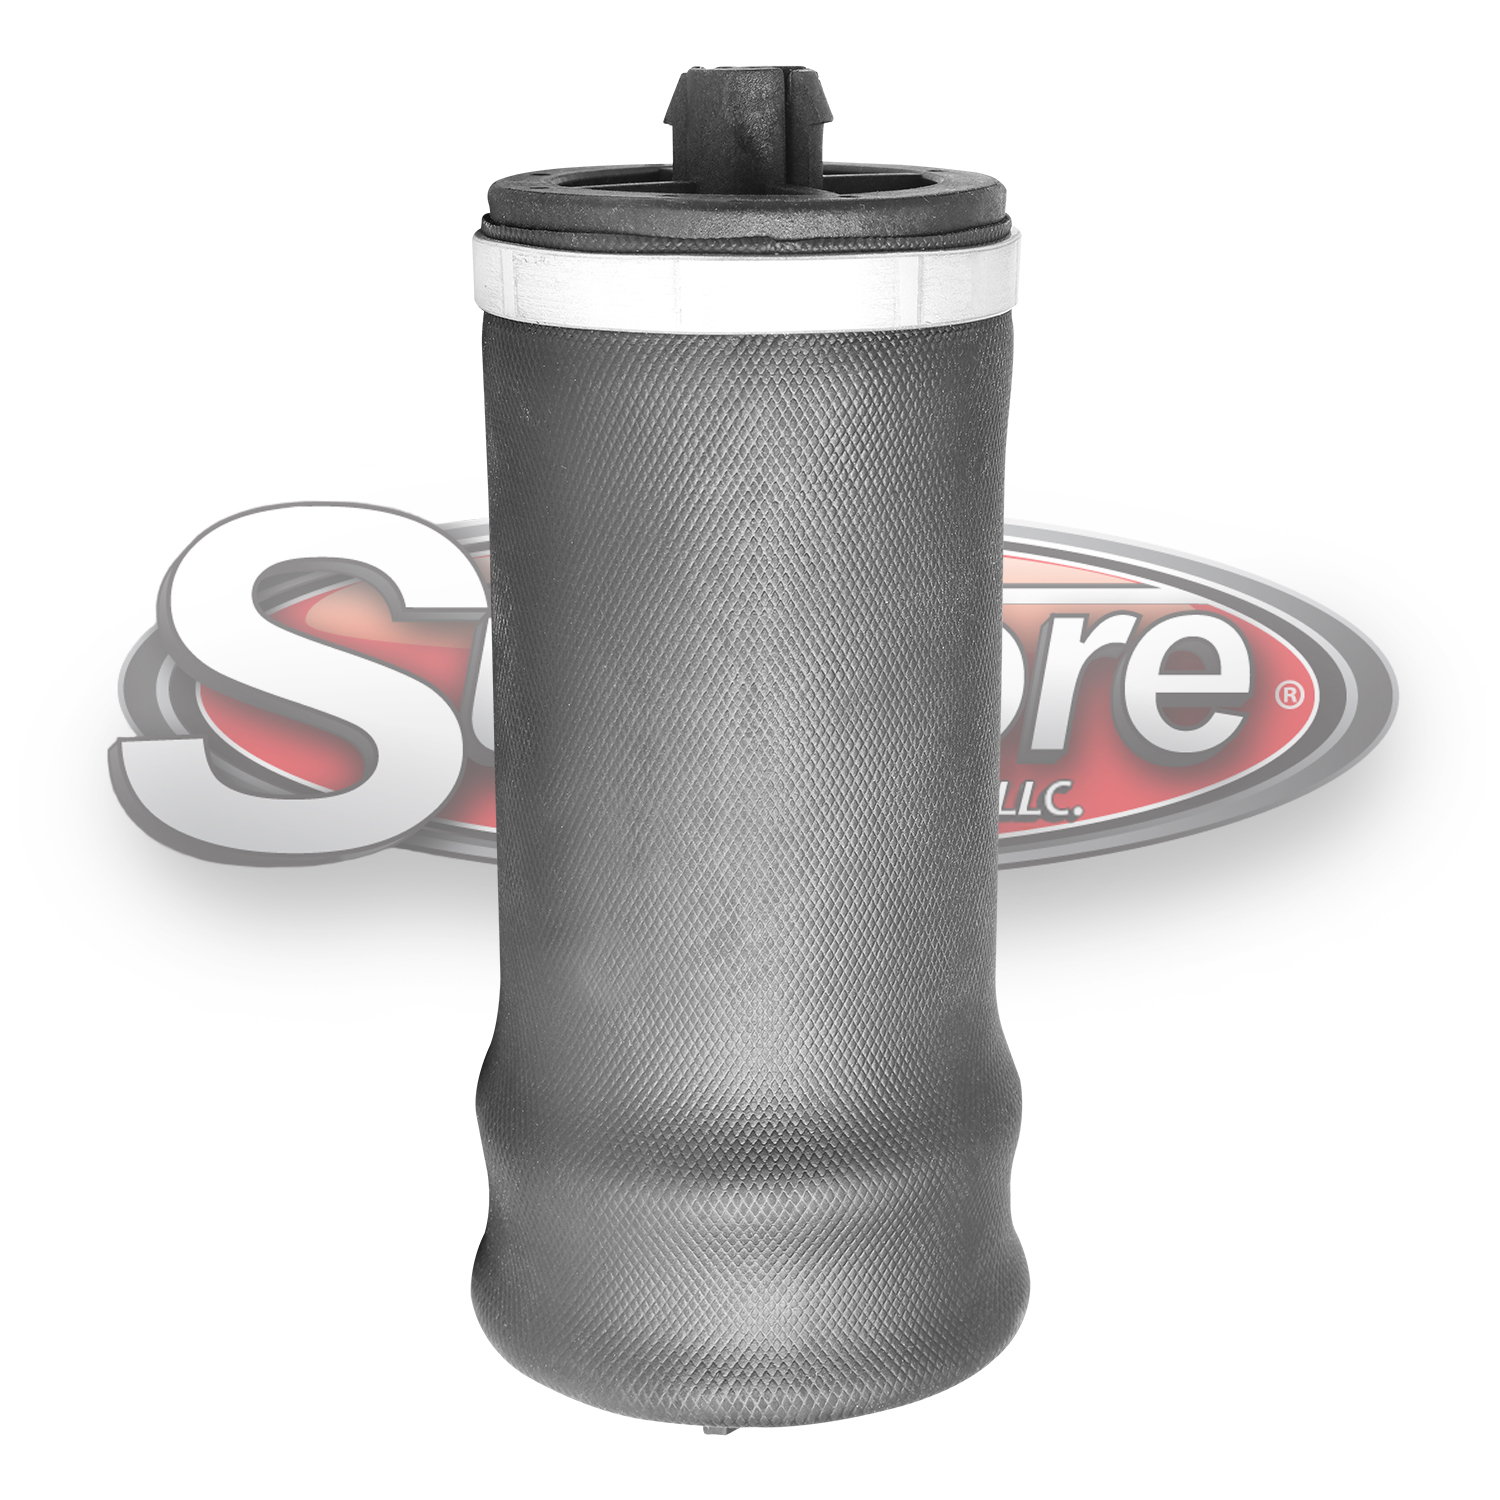 Kenworth Aerocab Driver Seat Air Spring Replaces W02-358-7109 Firestone Air Bags